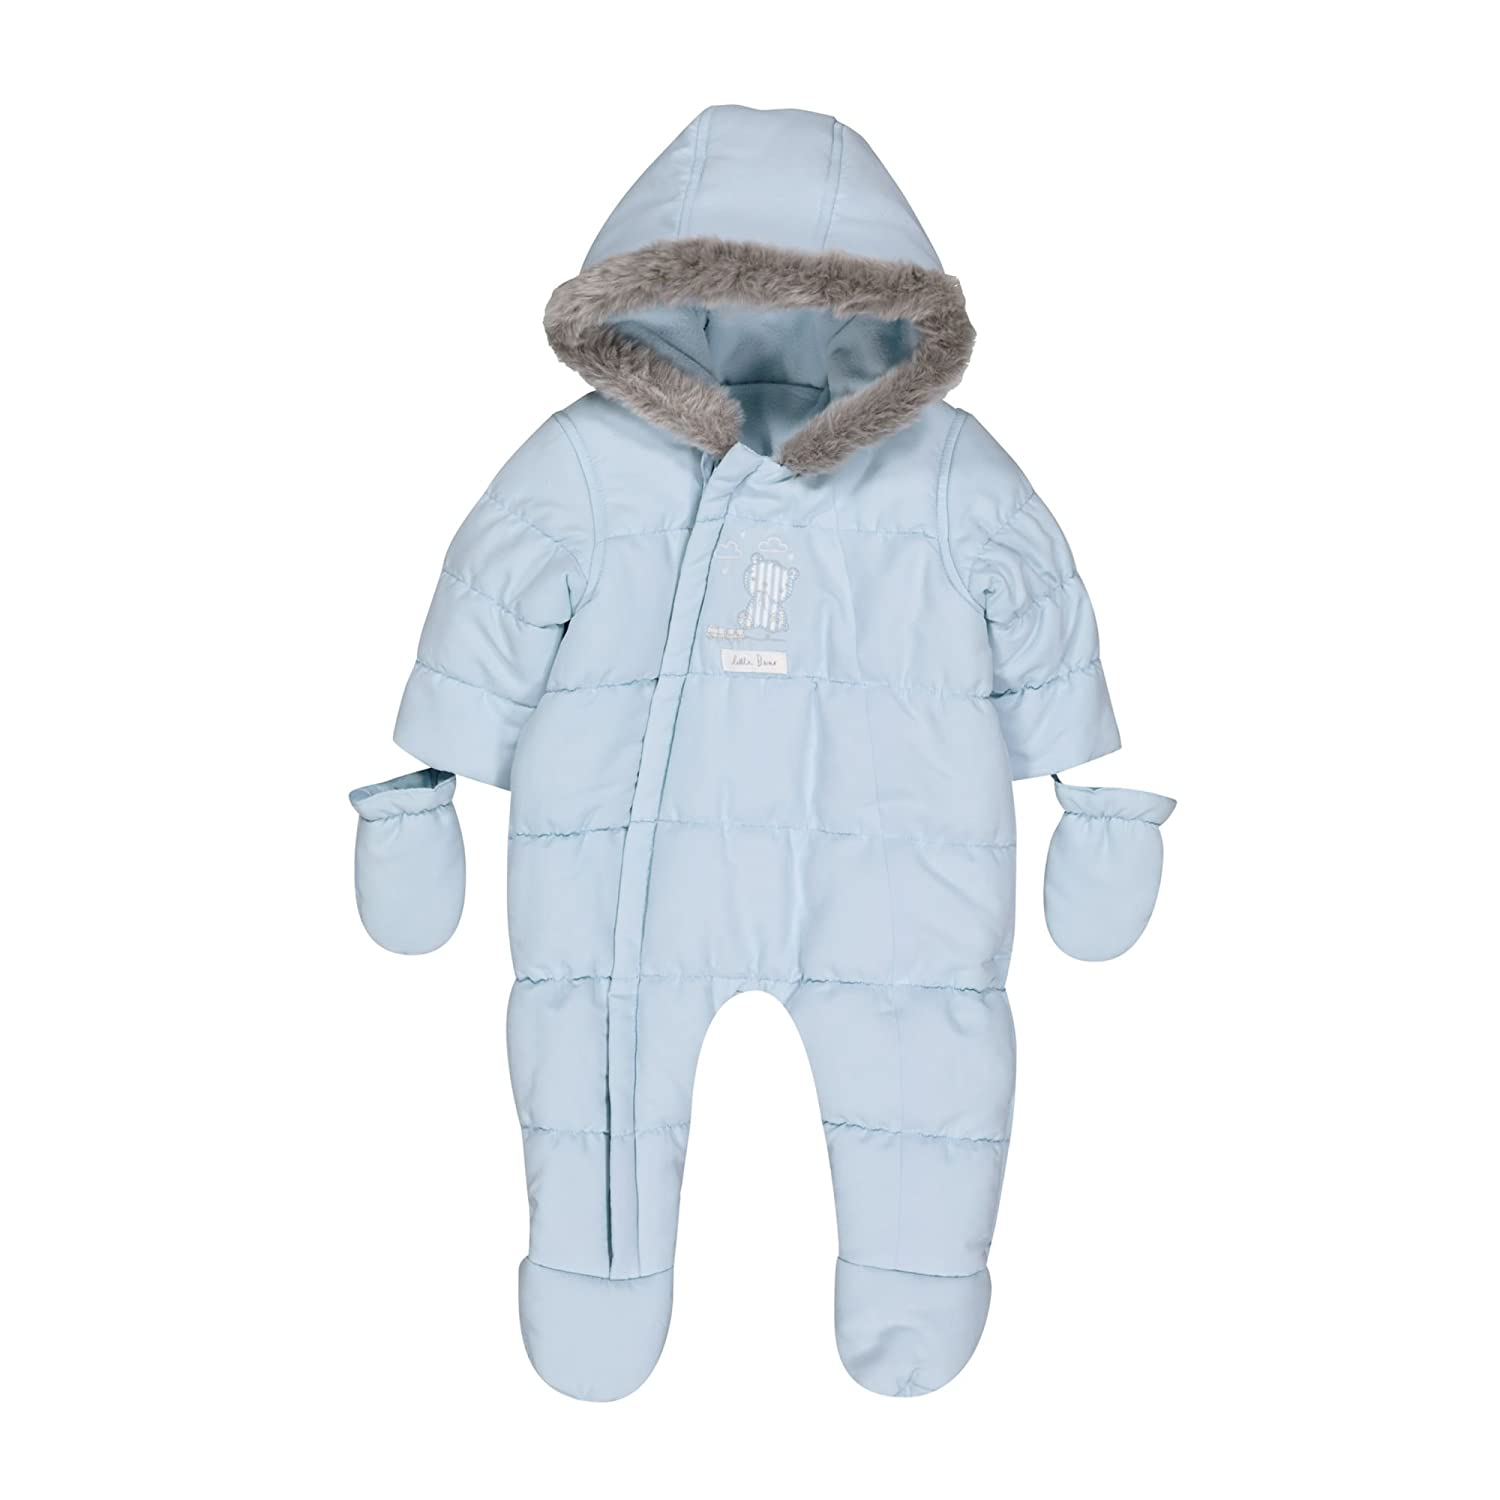 Mothercare Baby Boys' Graphic Snowsuit Fleece QD716